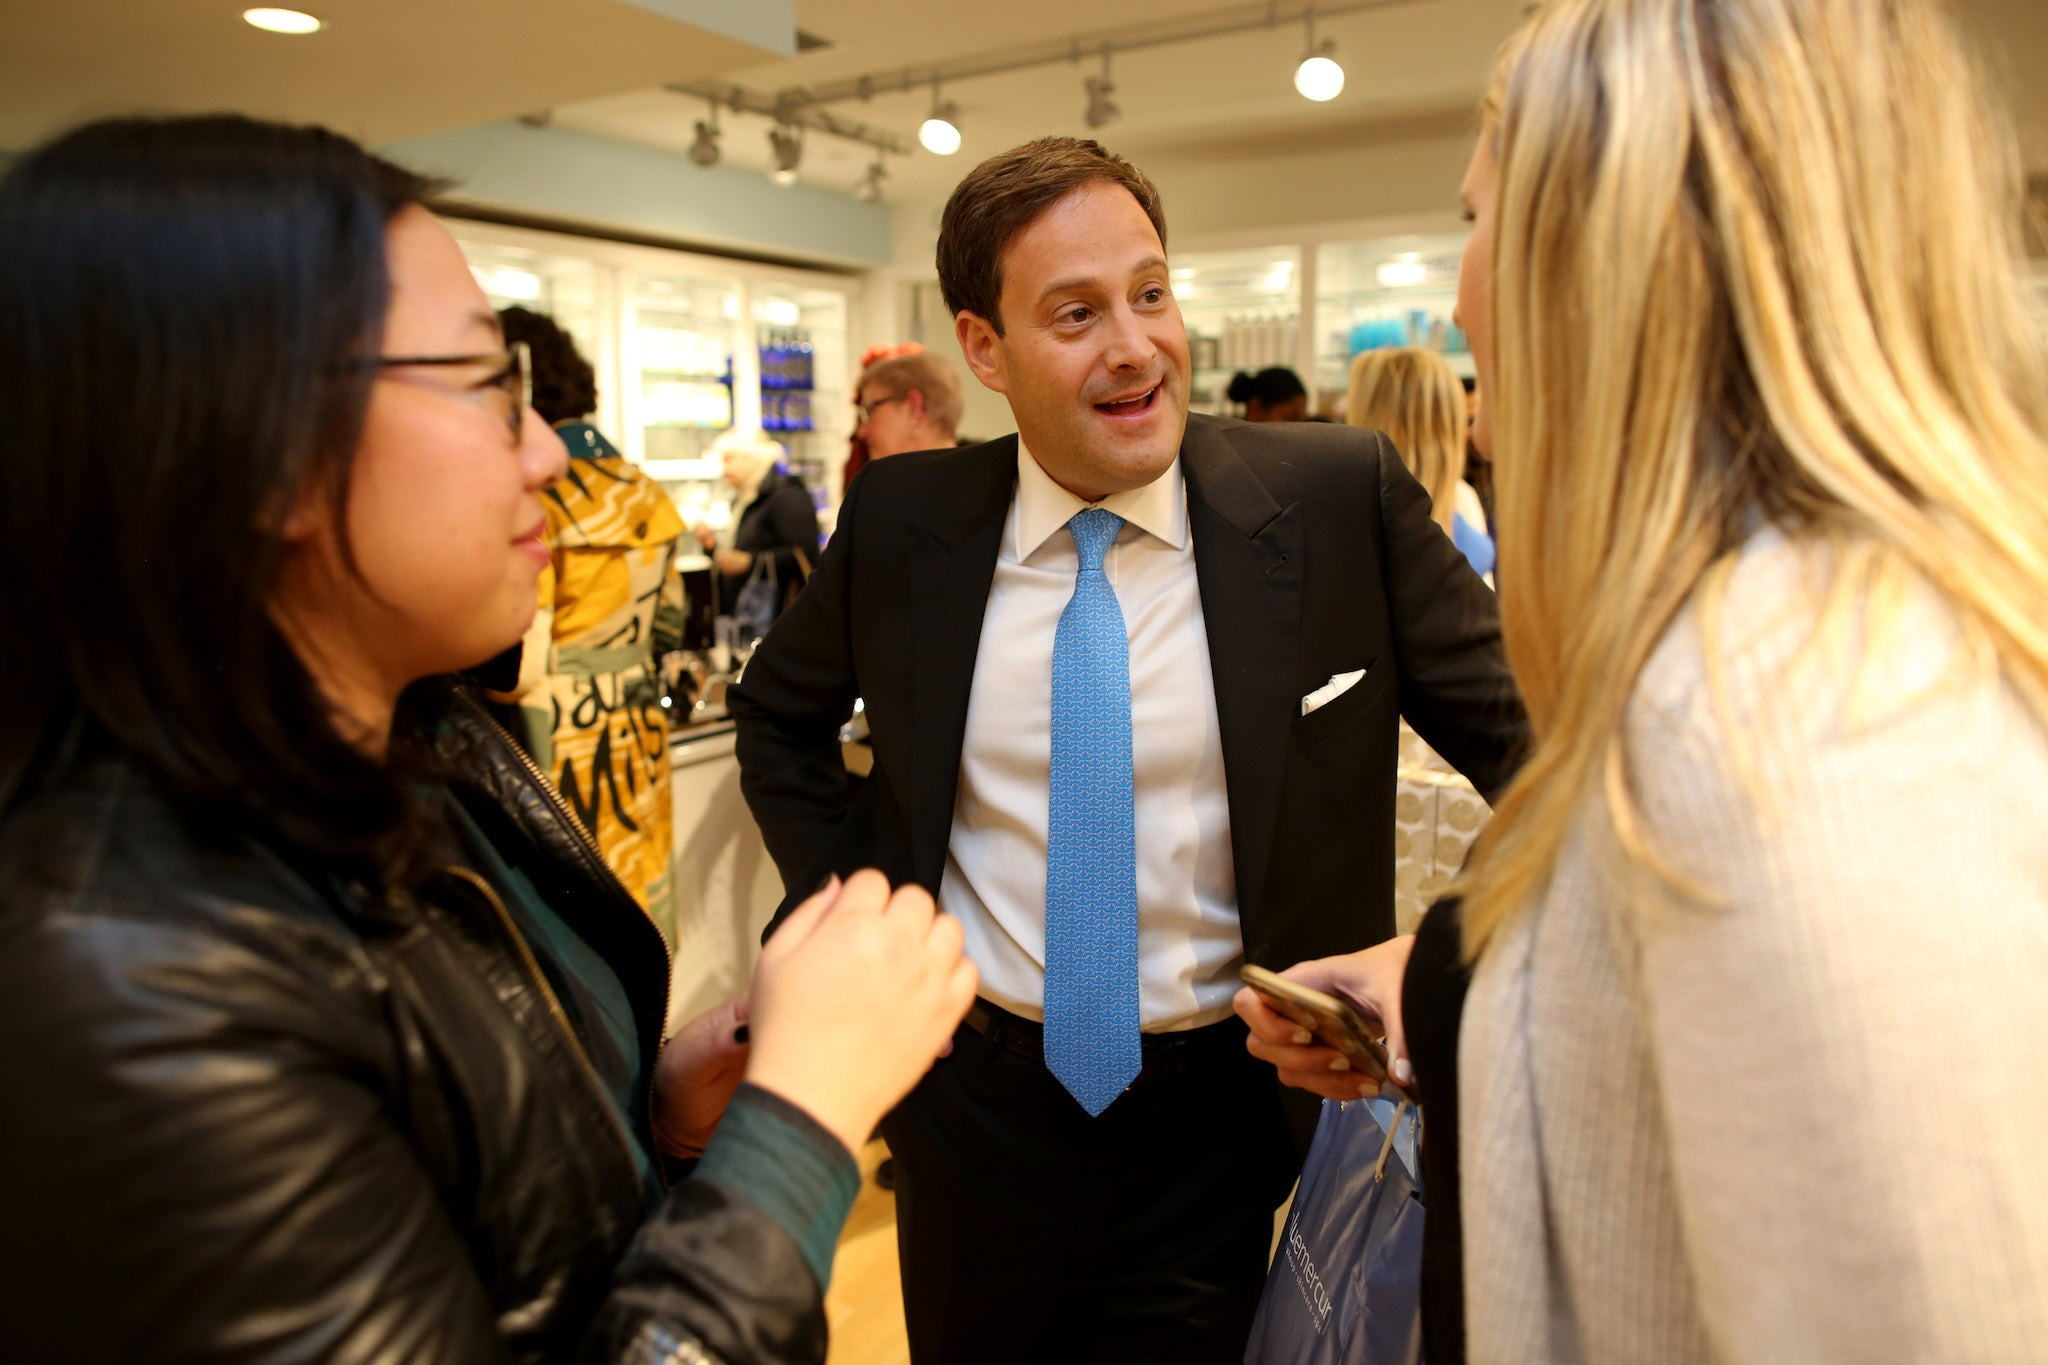 Barry Beck, Bluemercury Founder, at the grand opening of Bluemercury Shop-in-Shop at Macy's, San Francisco.